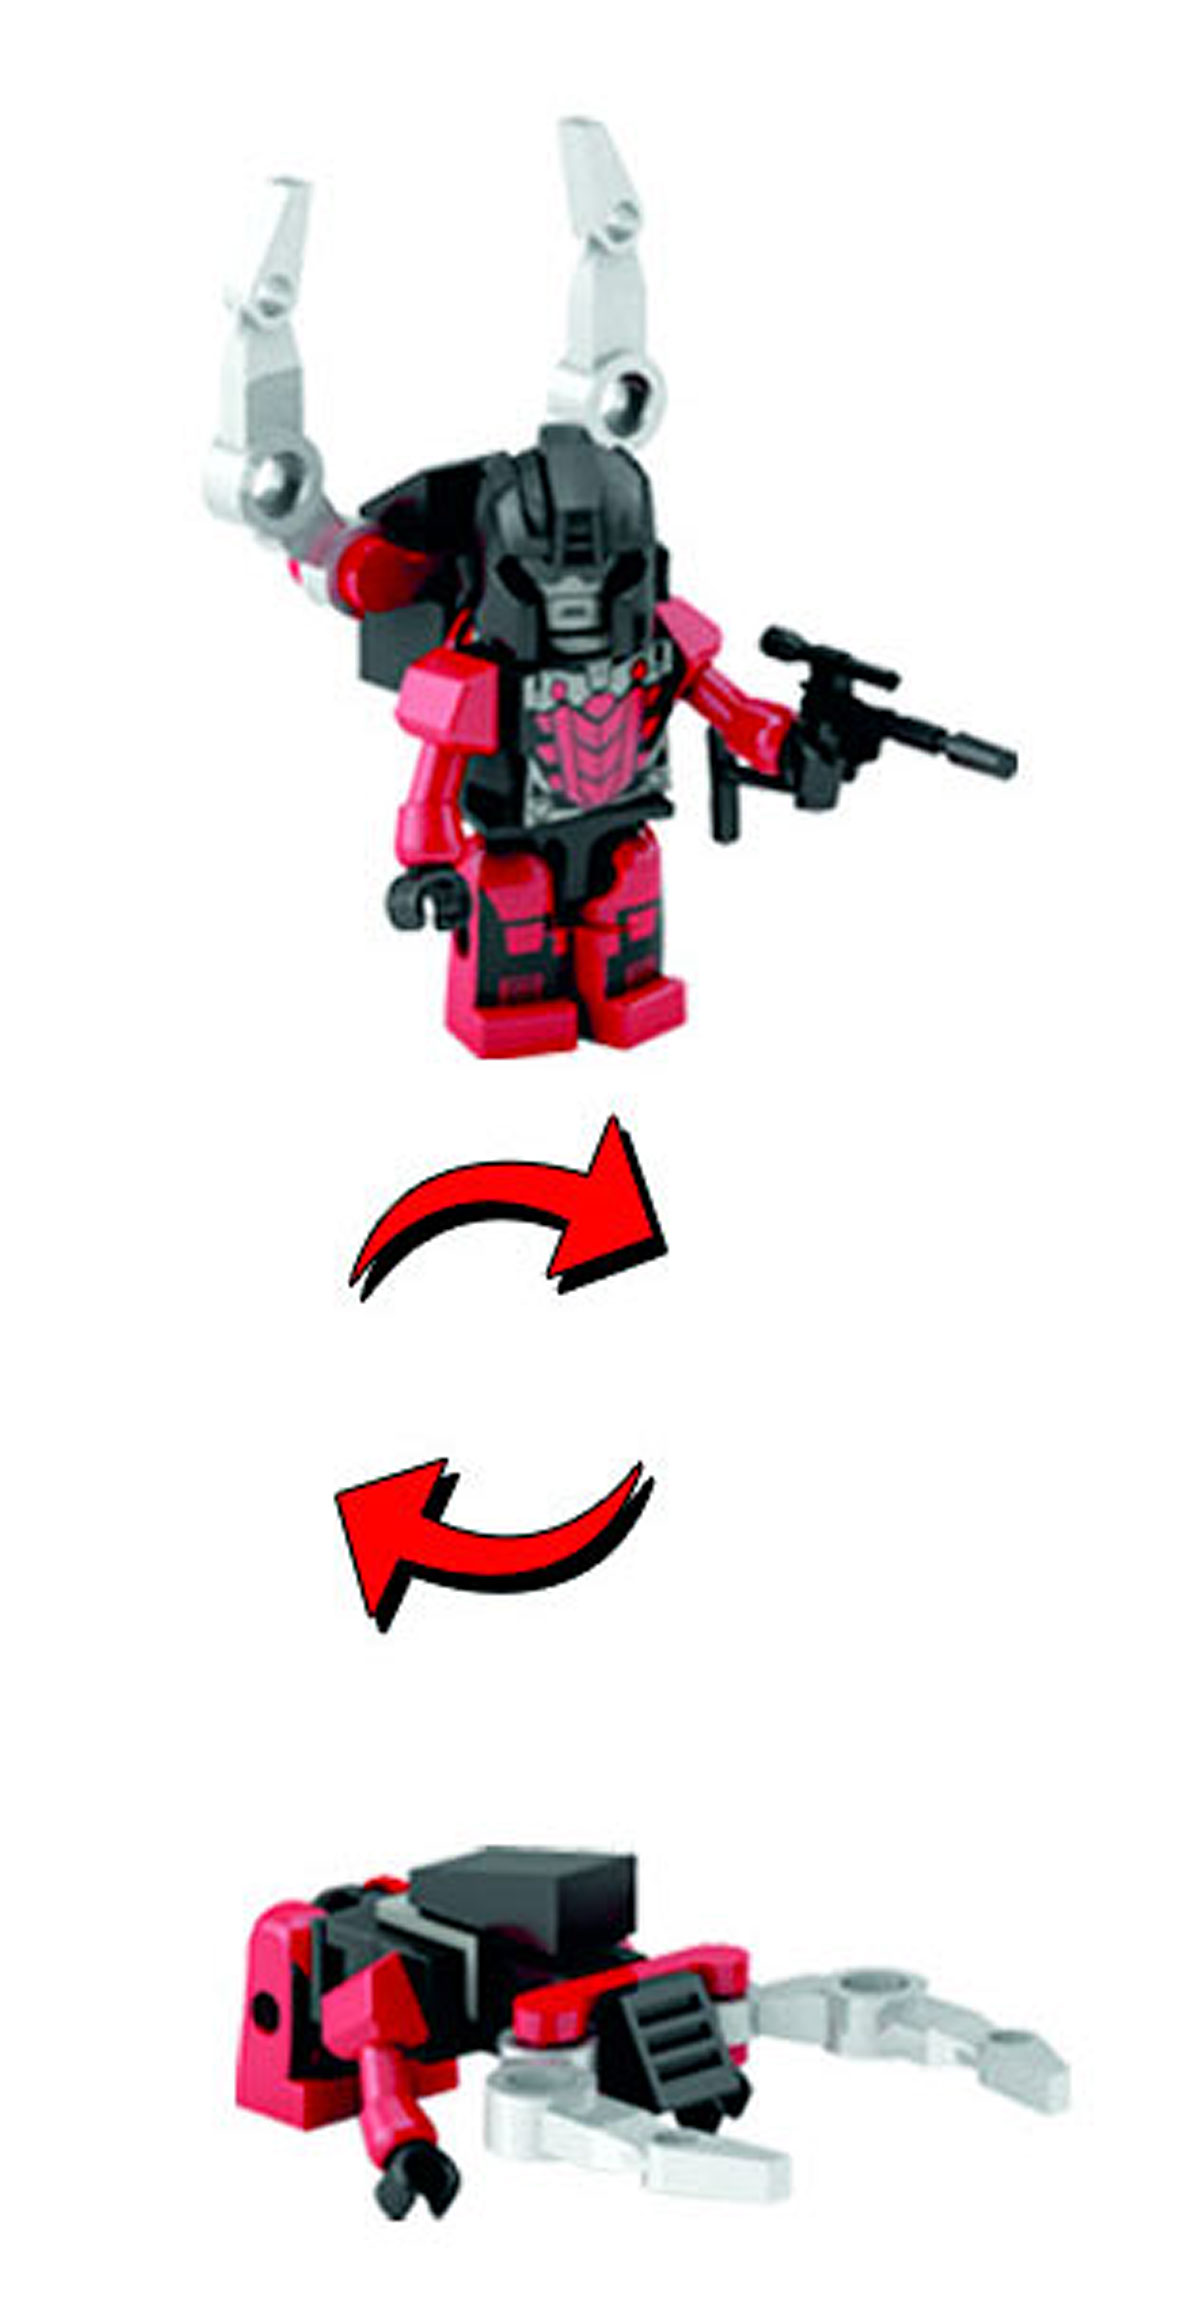 Transformers, Teenage Mutant Ninja Turtles, Masters of the Universe, Comic Books and more! listings from Seibertron.com: SKRAPNEL Transformers Kre-o Micro-Changers Series 5 45 Kreon Insecticon Shrapnel